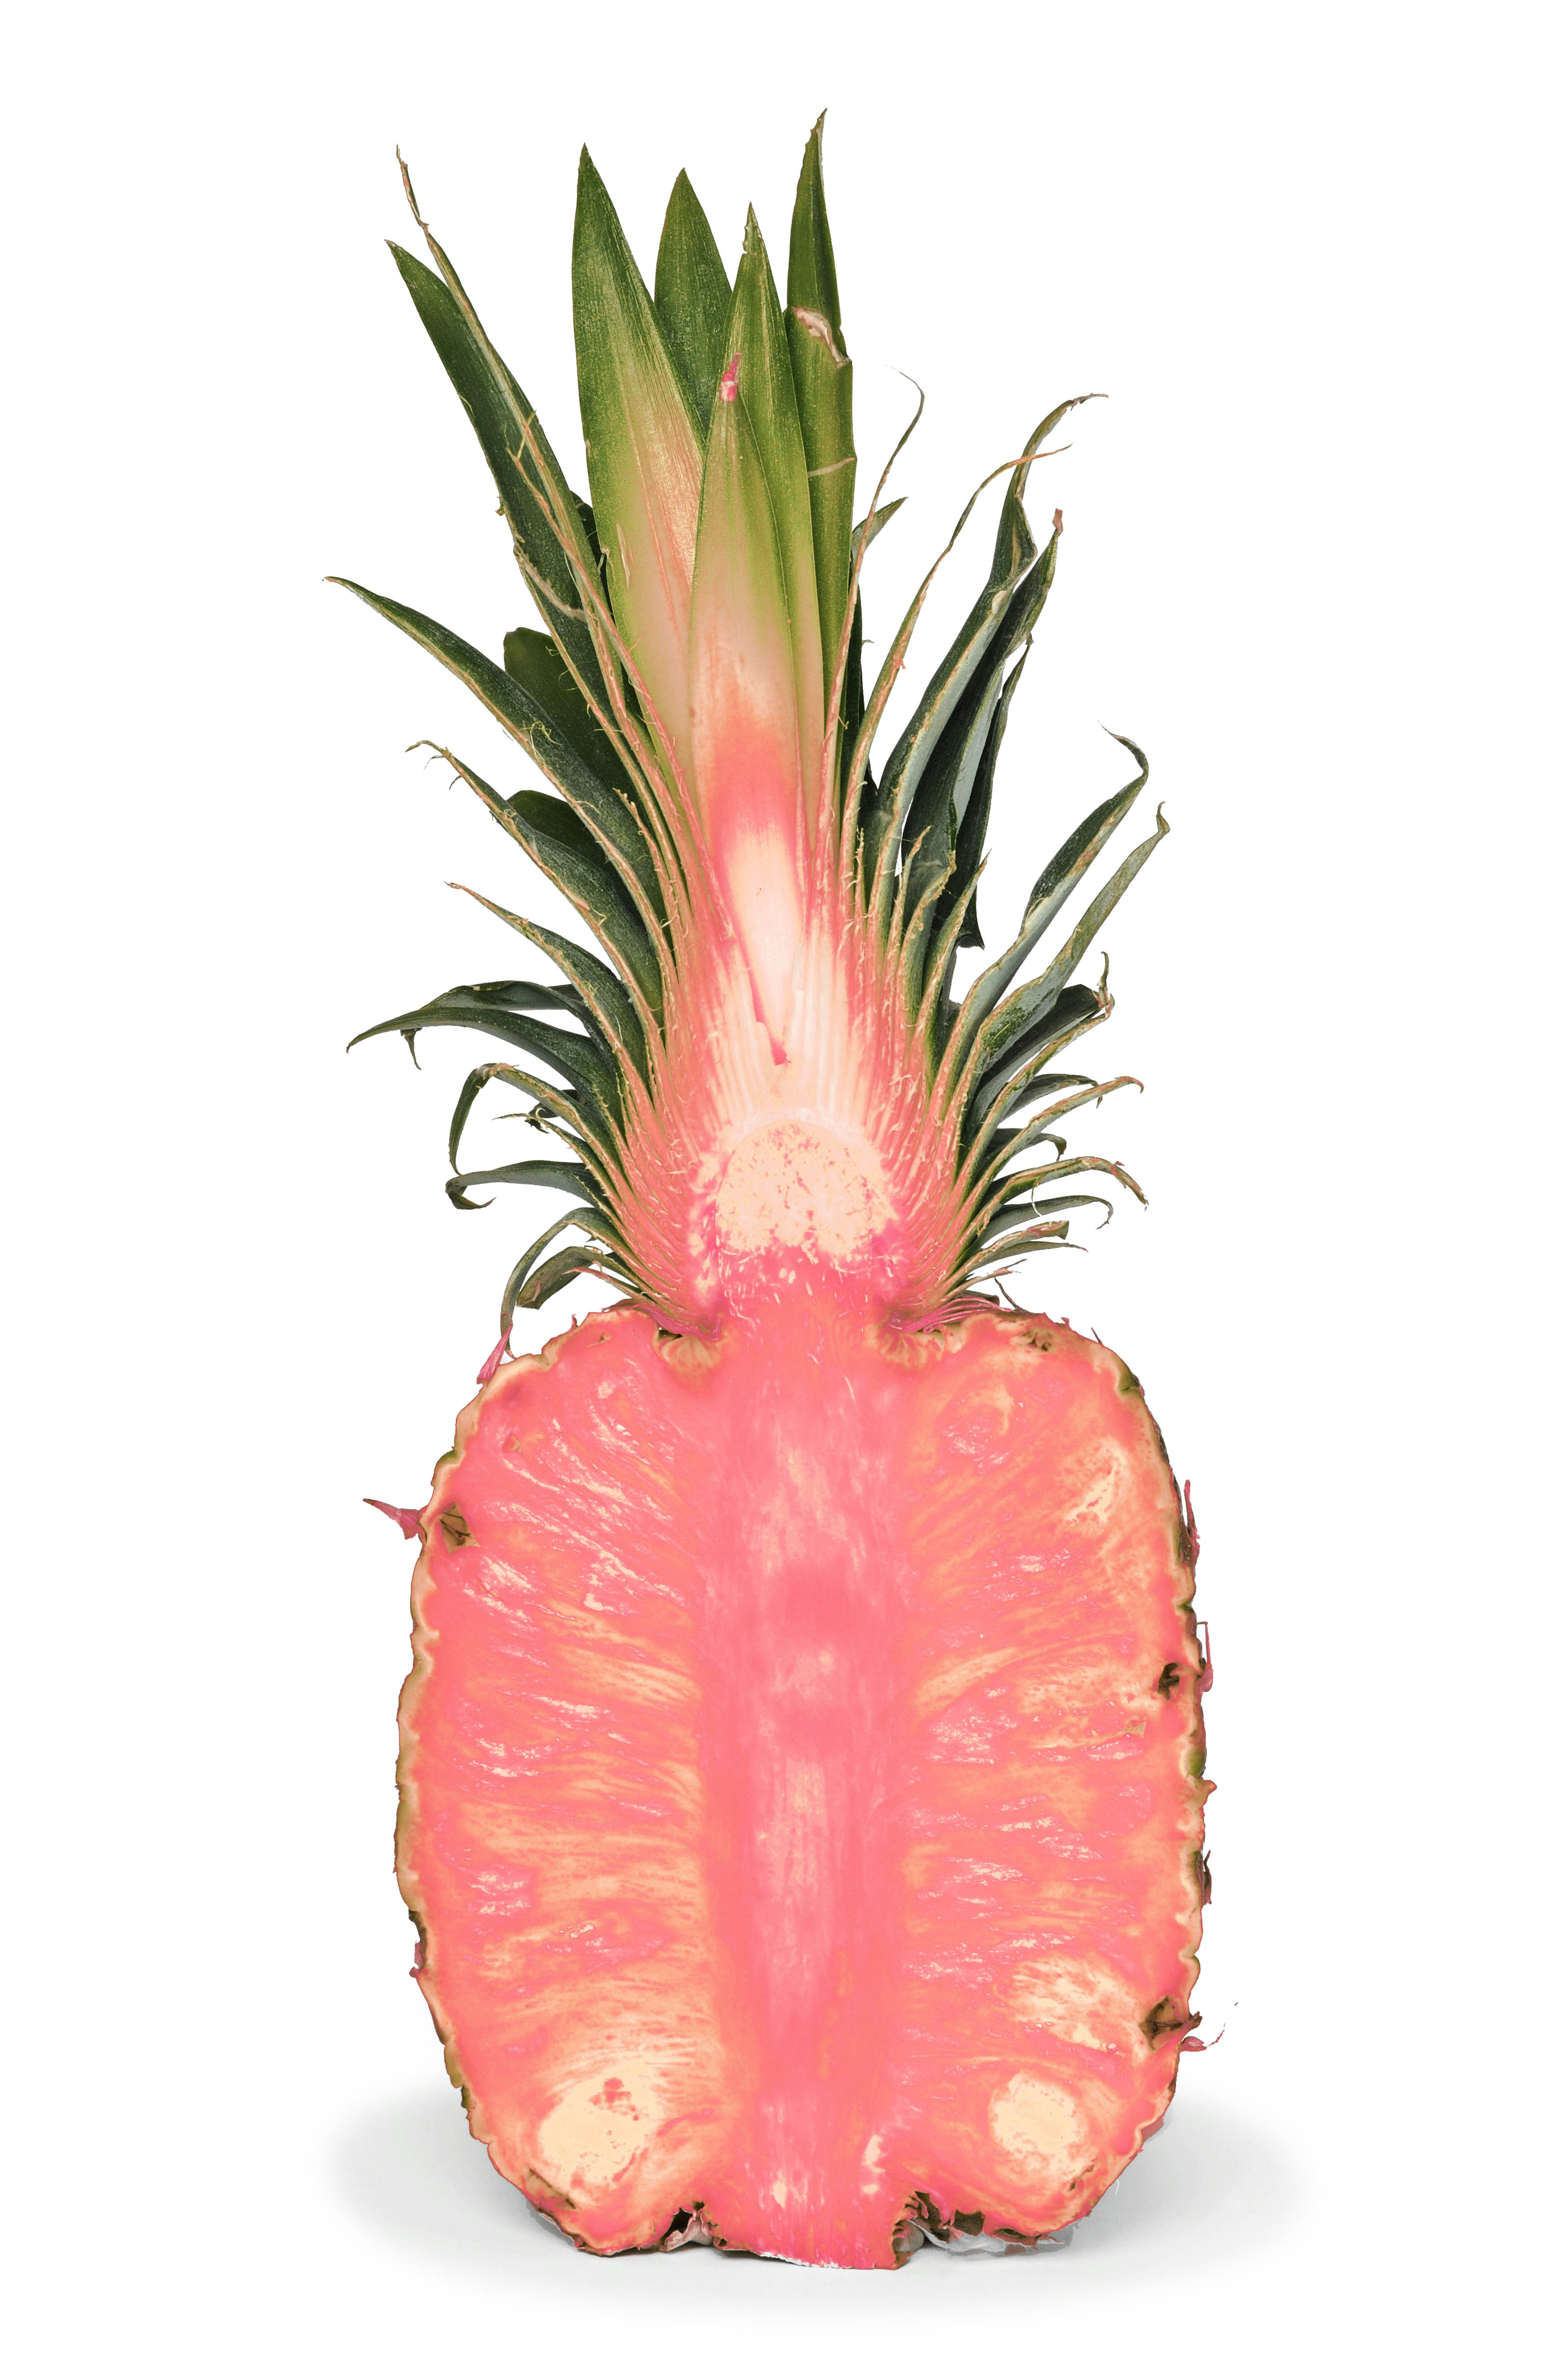 This photo-illustration depicts what we imagine the pink pineapple will look like if it makes it onto store shelves.